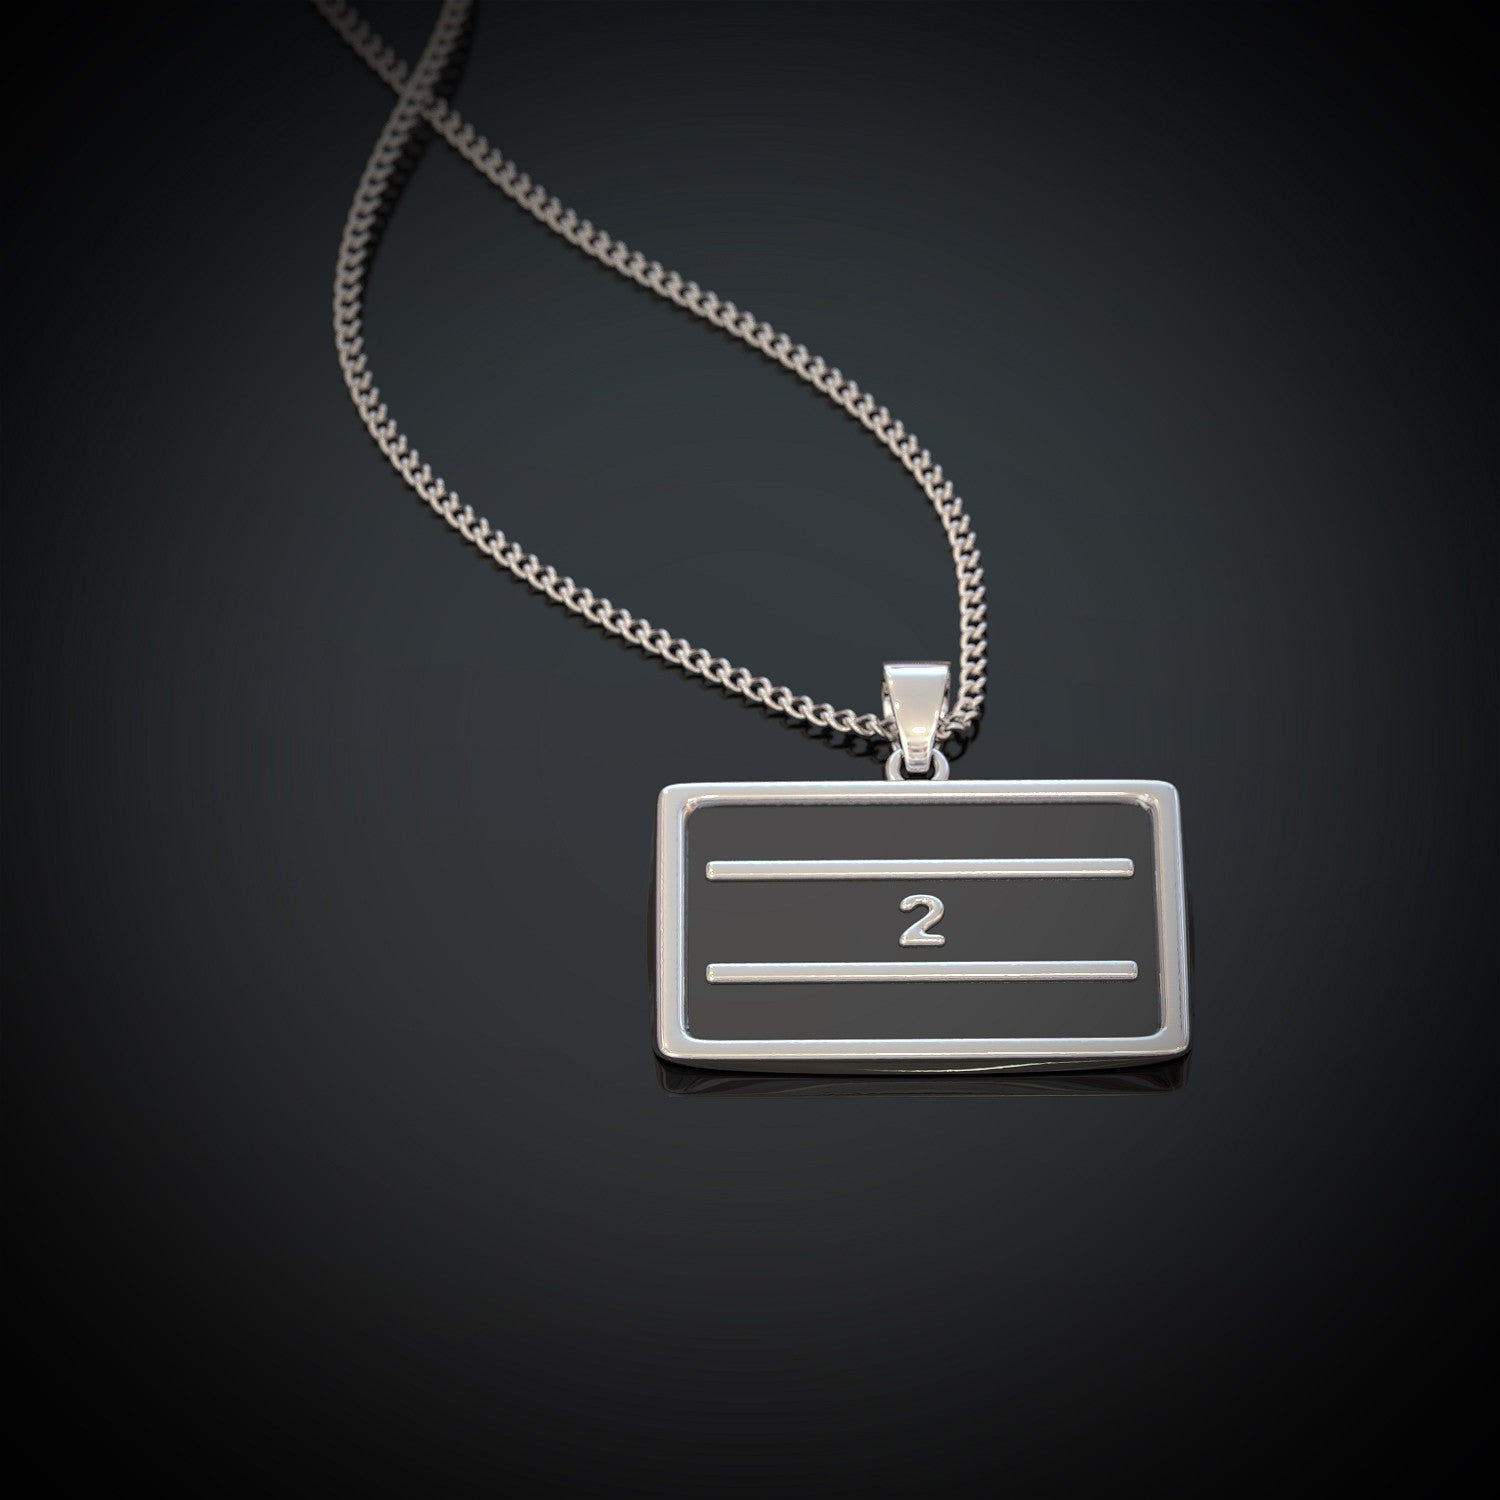 2nd Amendment Gun Rights Flag Necklace